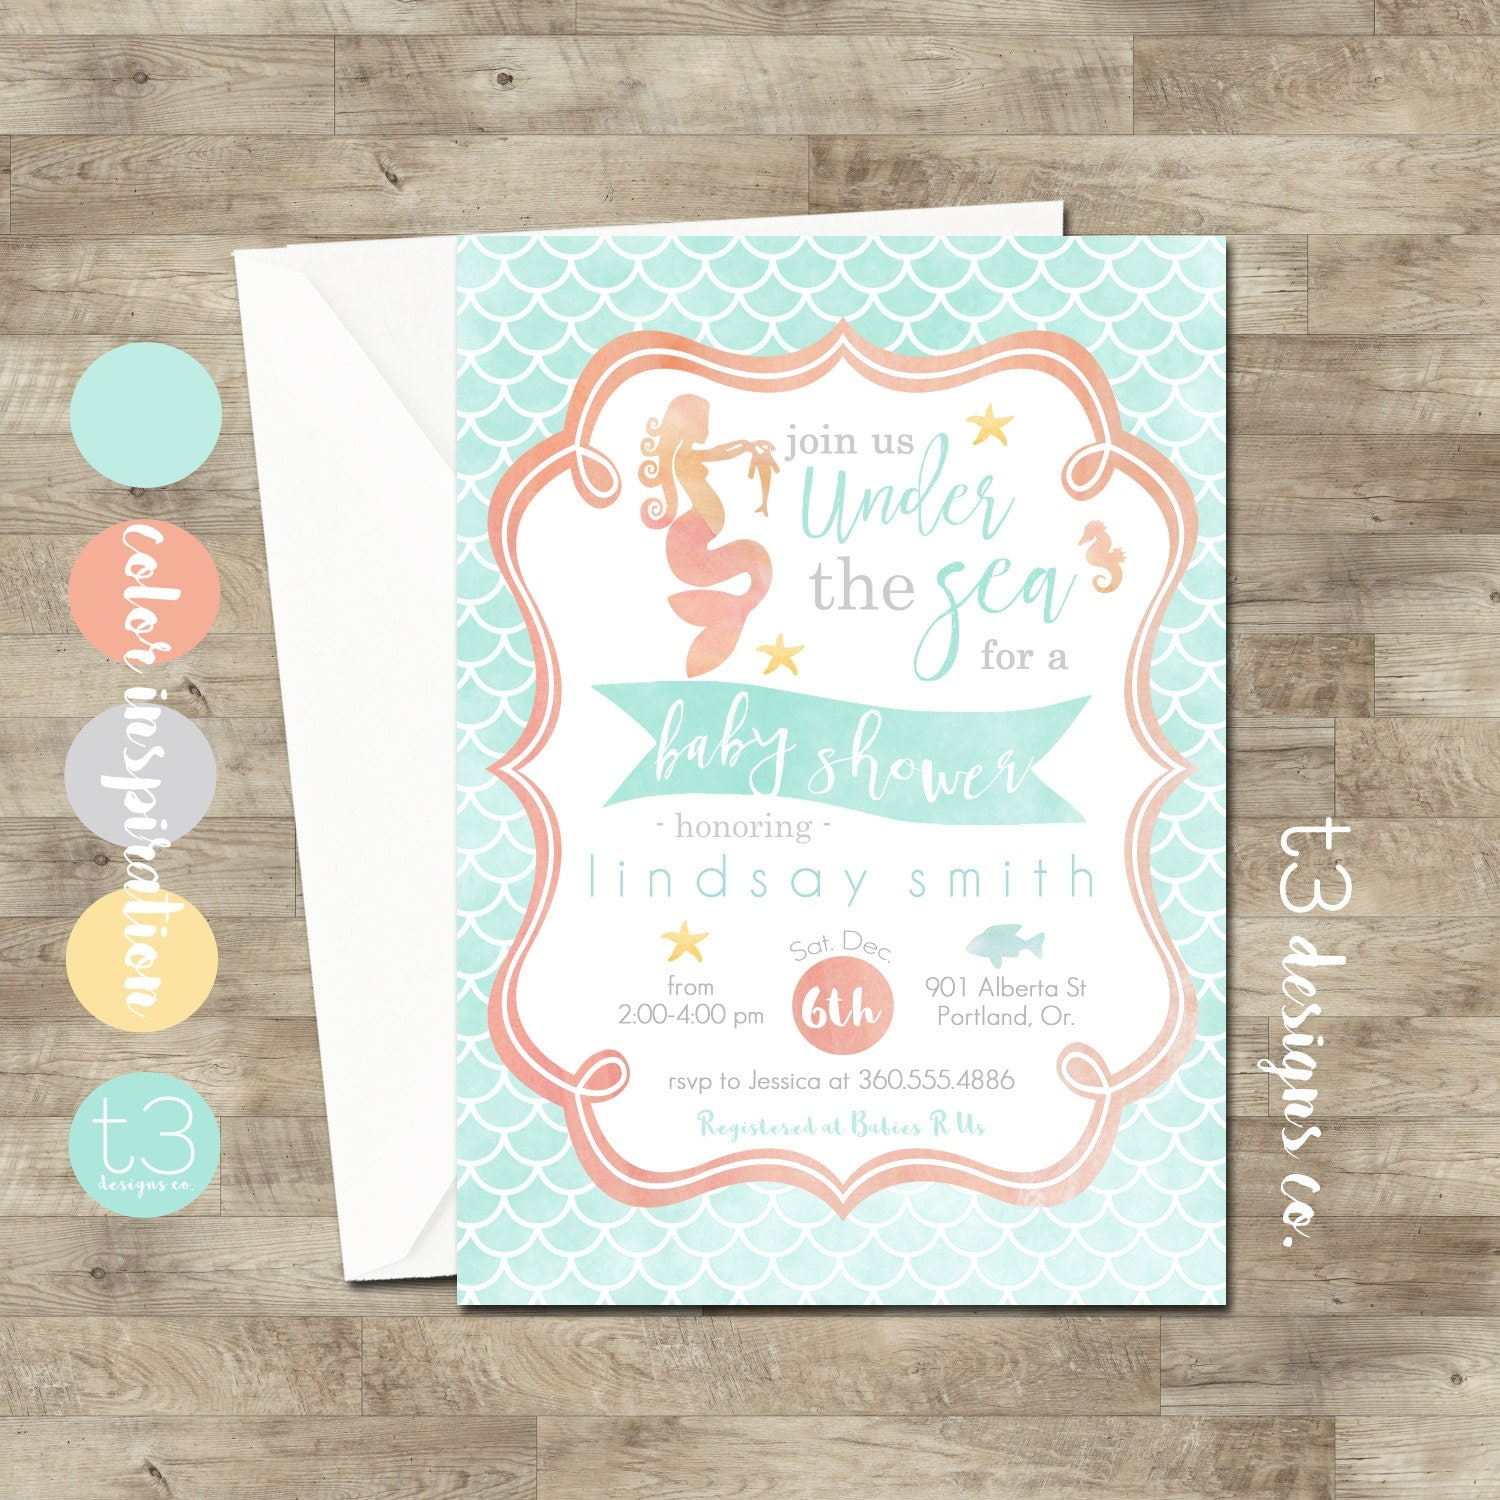 Mermaid Baby Shower Invitations • Mermaid Invitation • Baby Shower